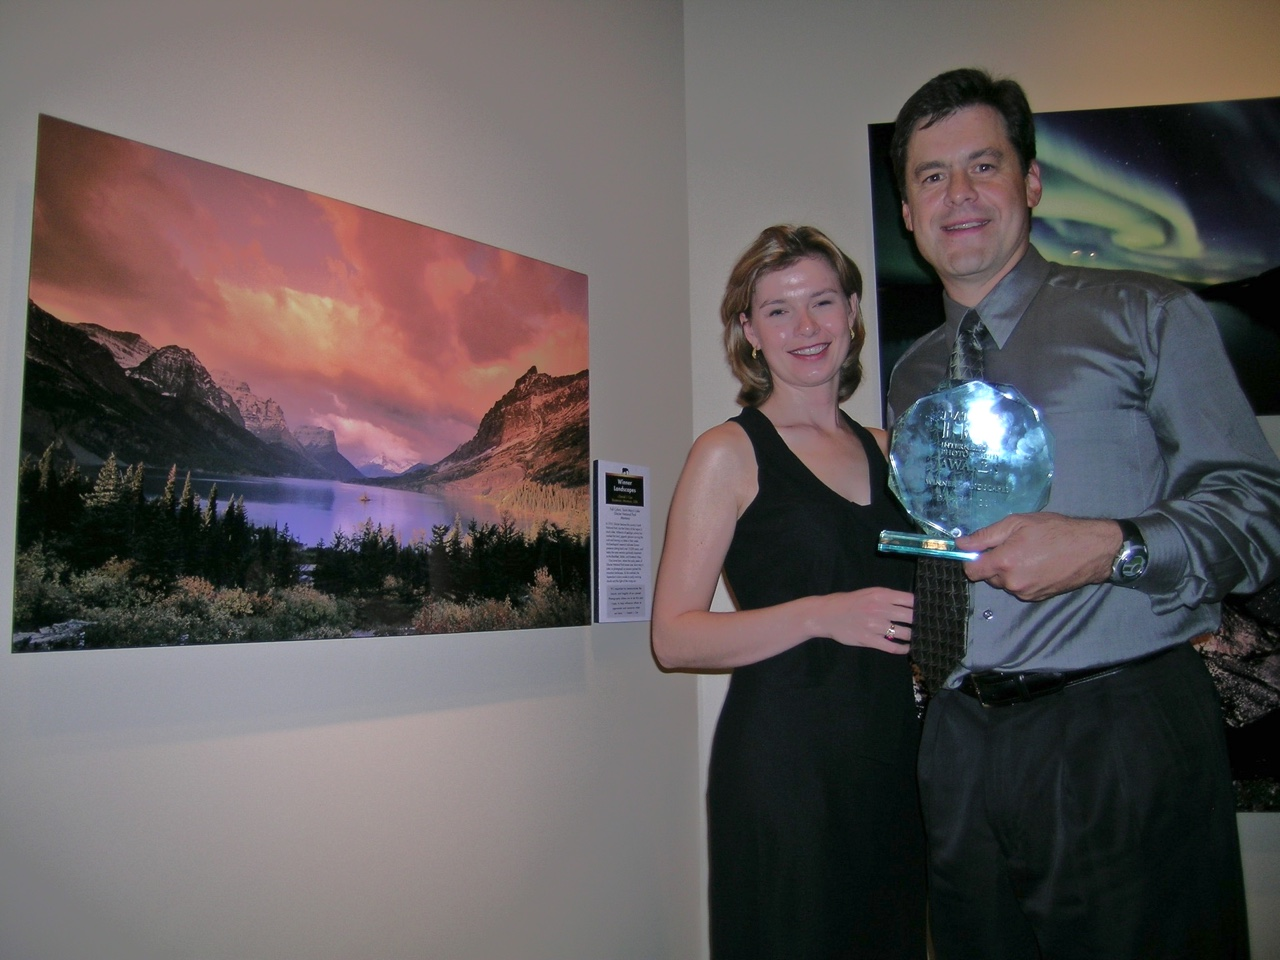 Daniel and Tanya at the Nature's Best photography awards in 1997 in Washington DC.